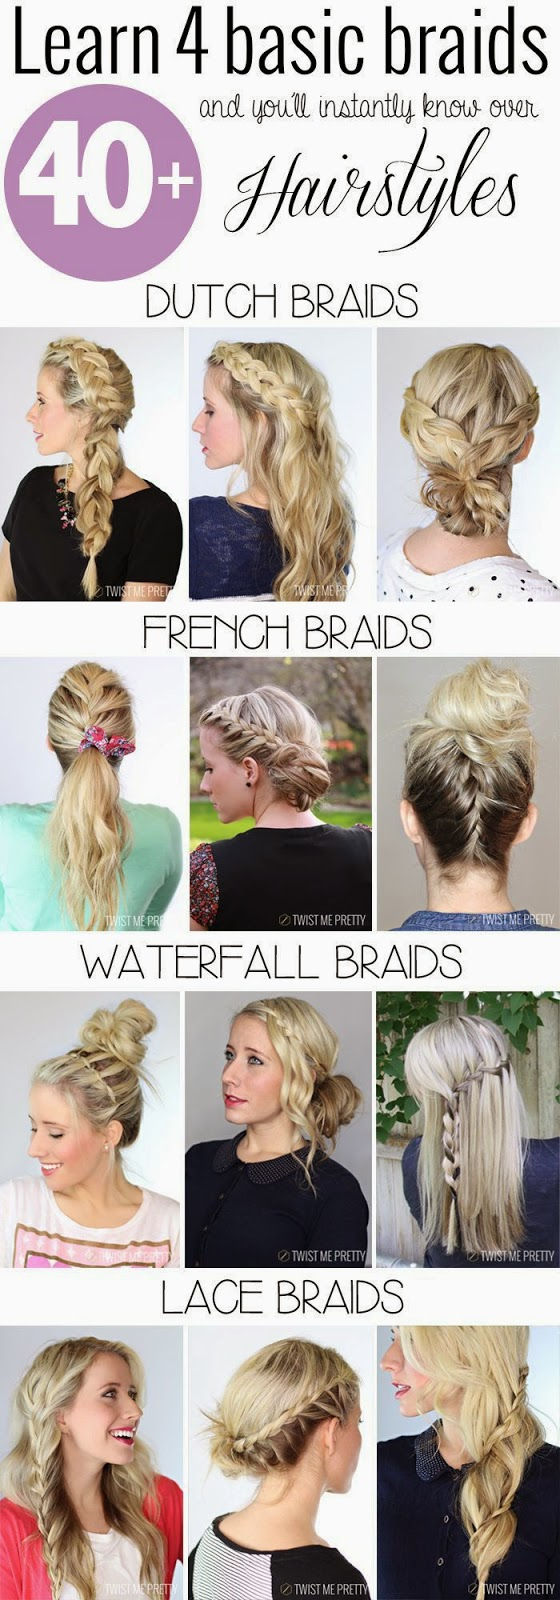 DIY 4 basic braids